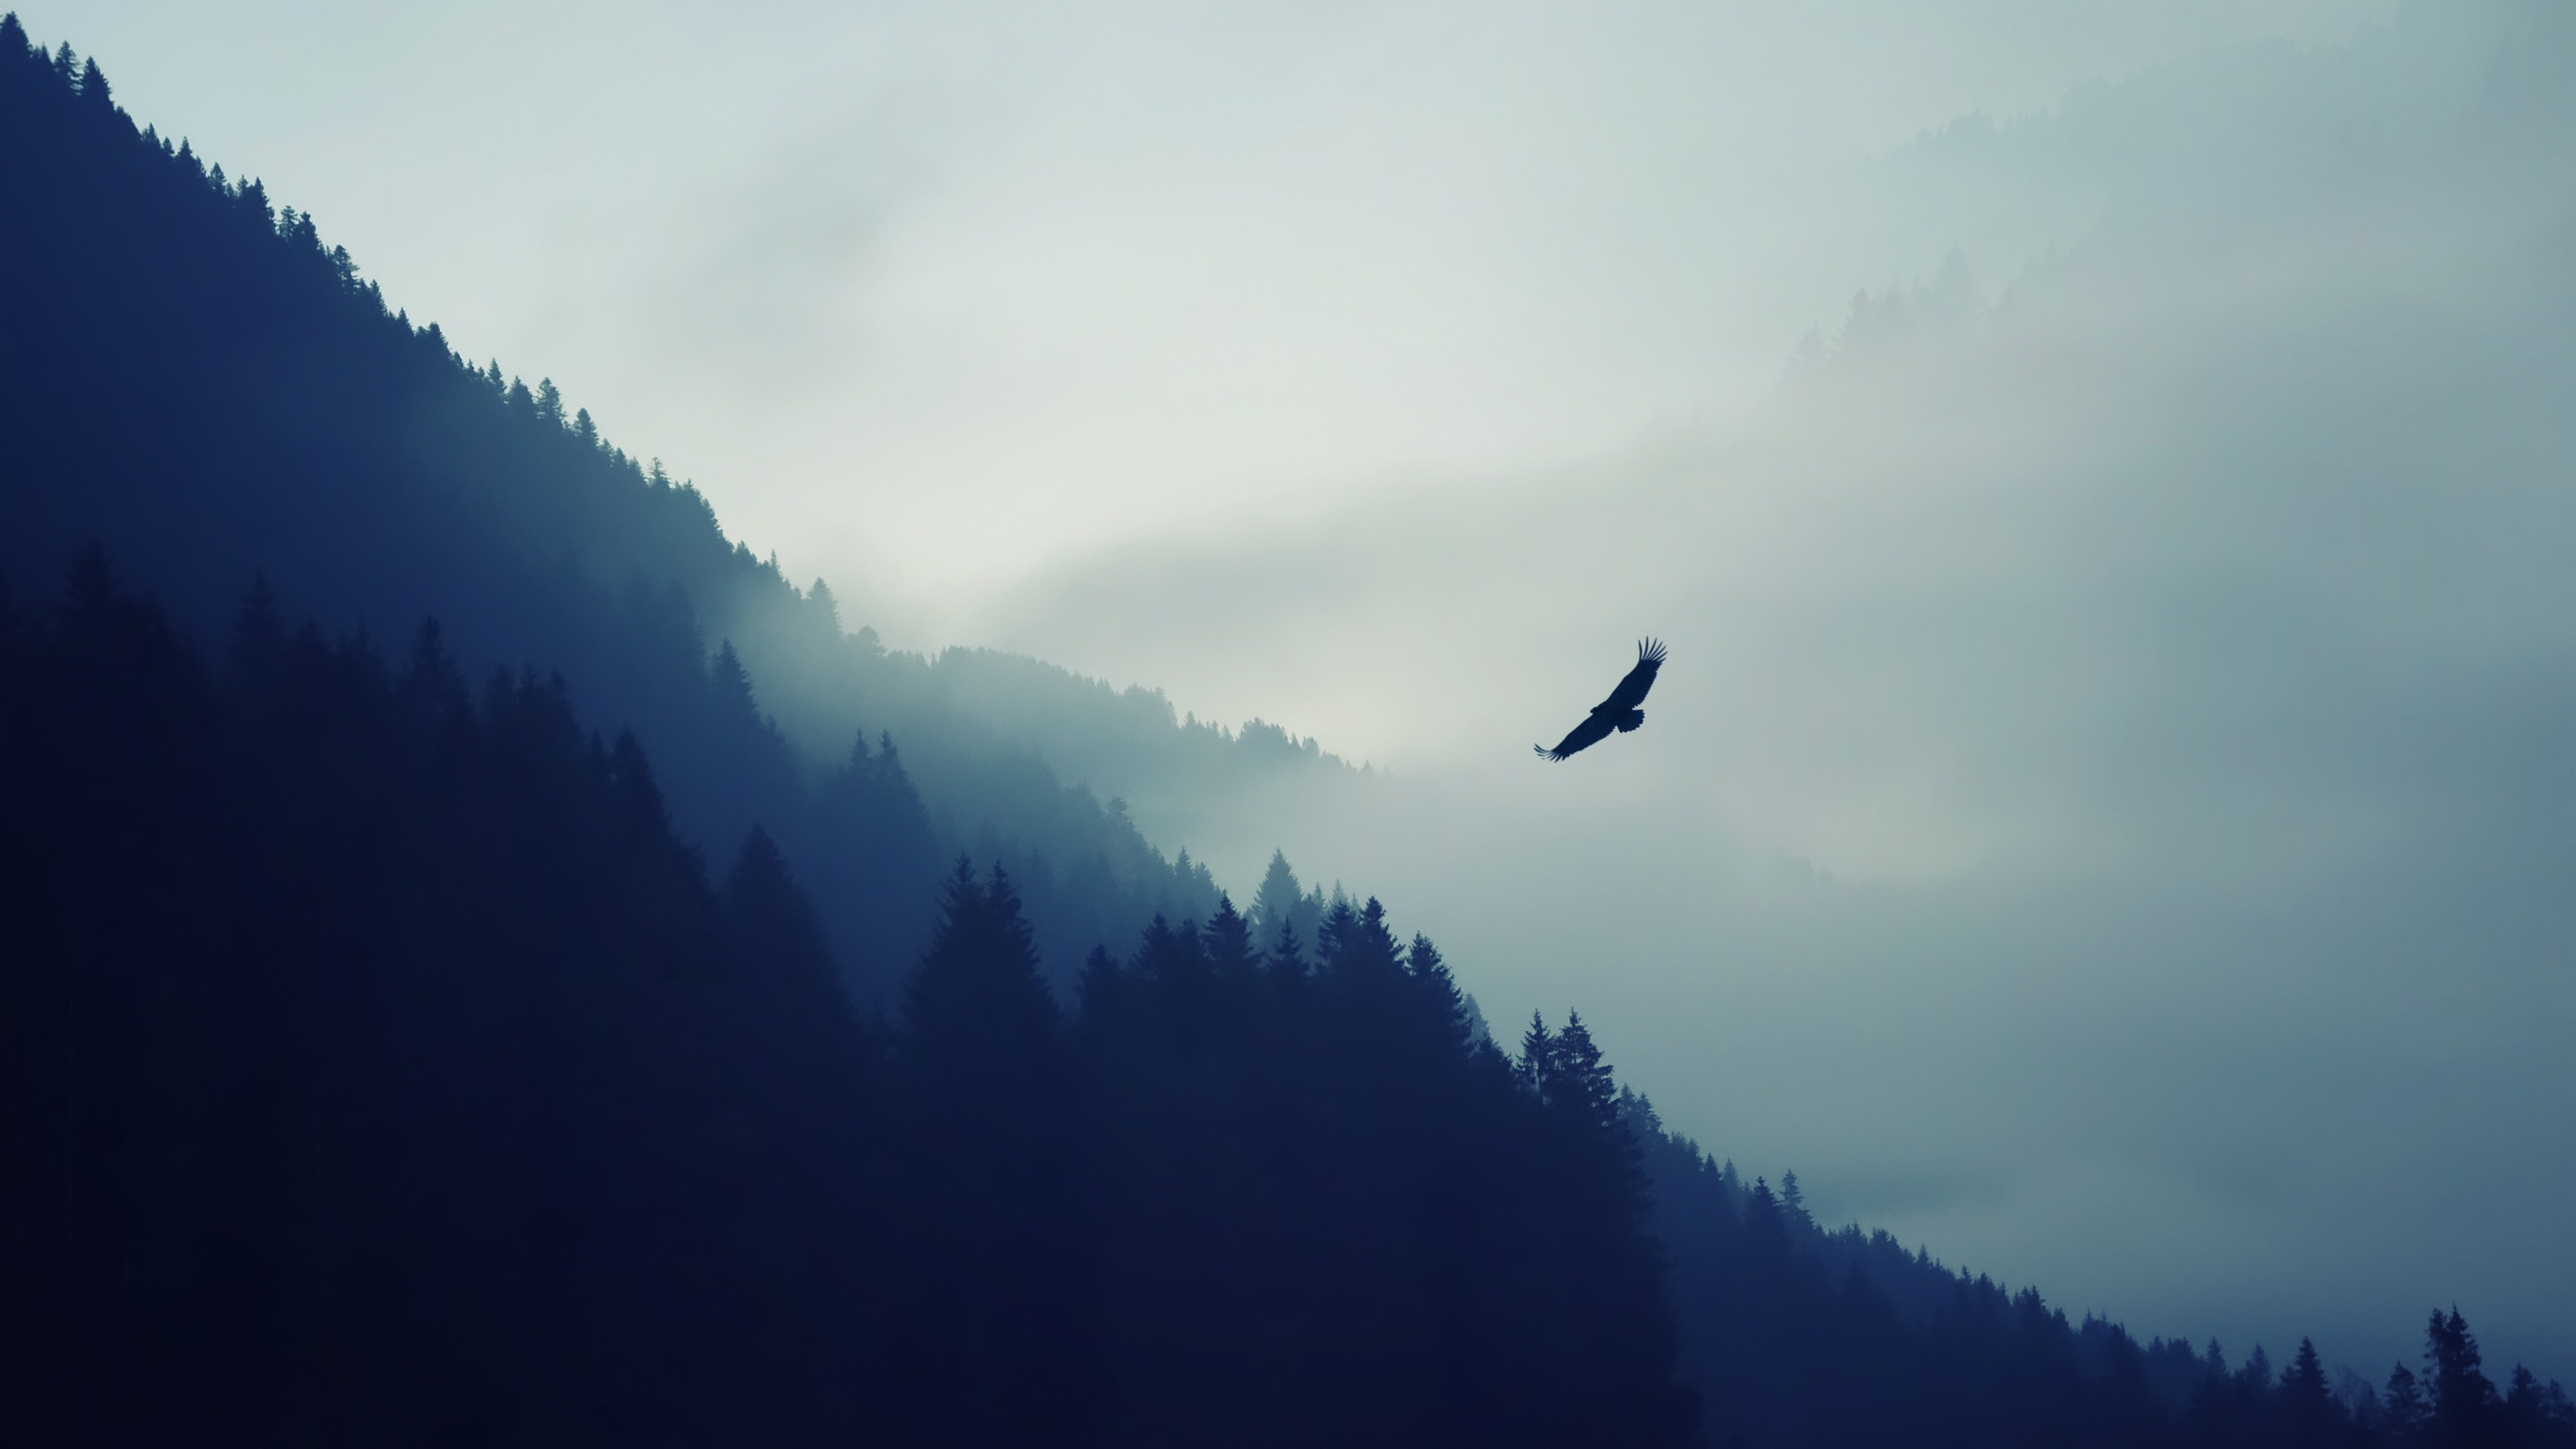 Res: 3840x2160,  nature mountain eagle fog landscape ultrahd 4k wallpaper wallpaper